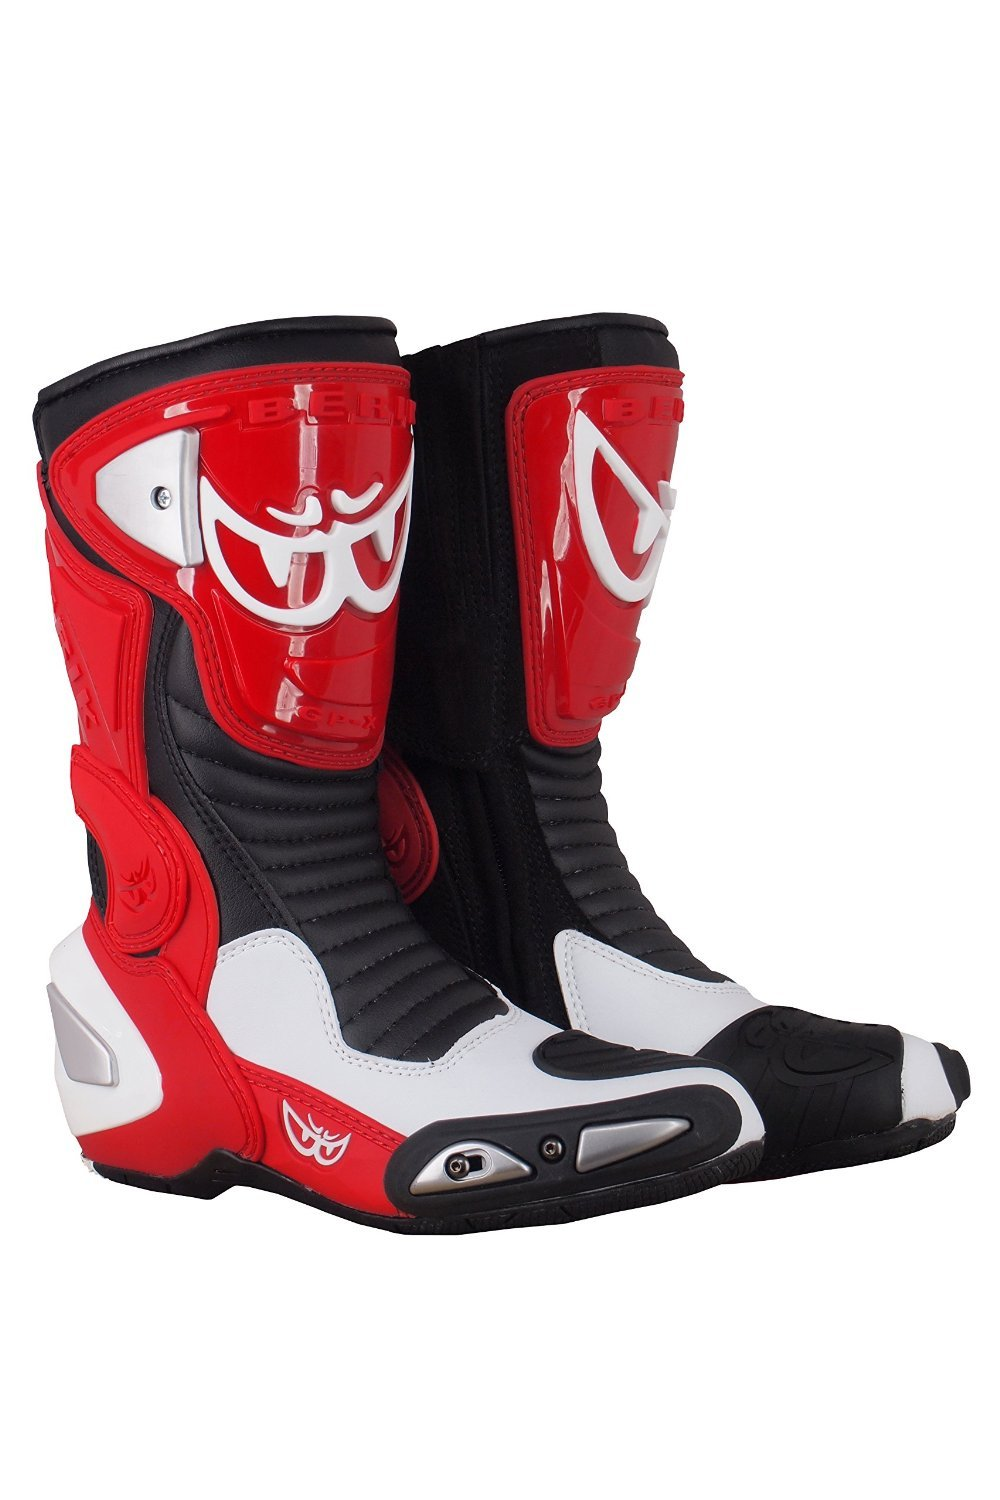 BERIK RACING BOOTS BOT-1289-BK RED 44 B071S8VNVX